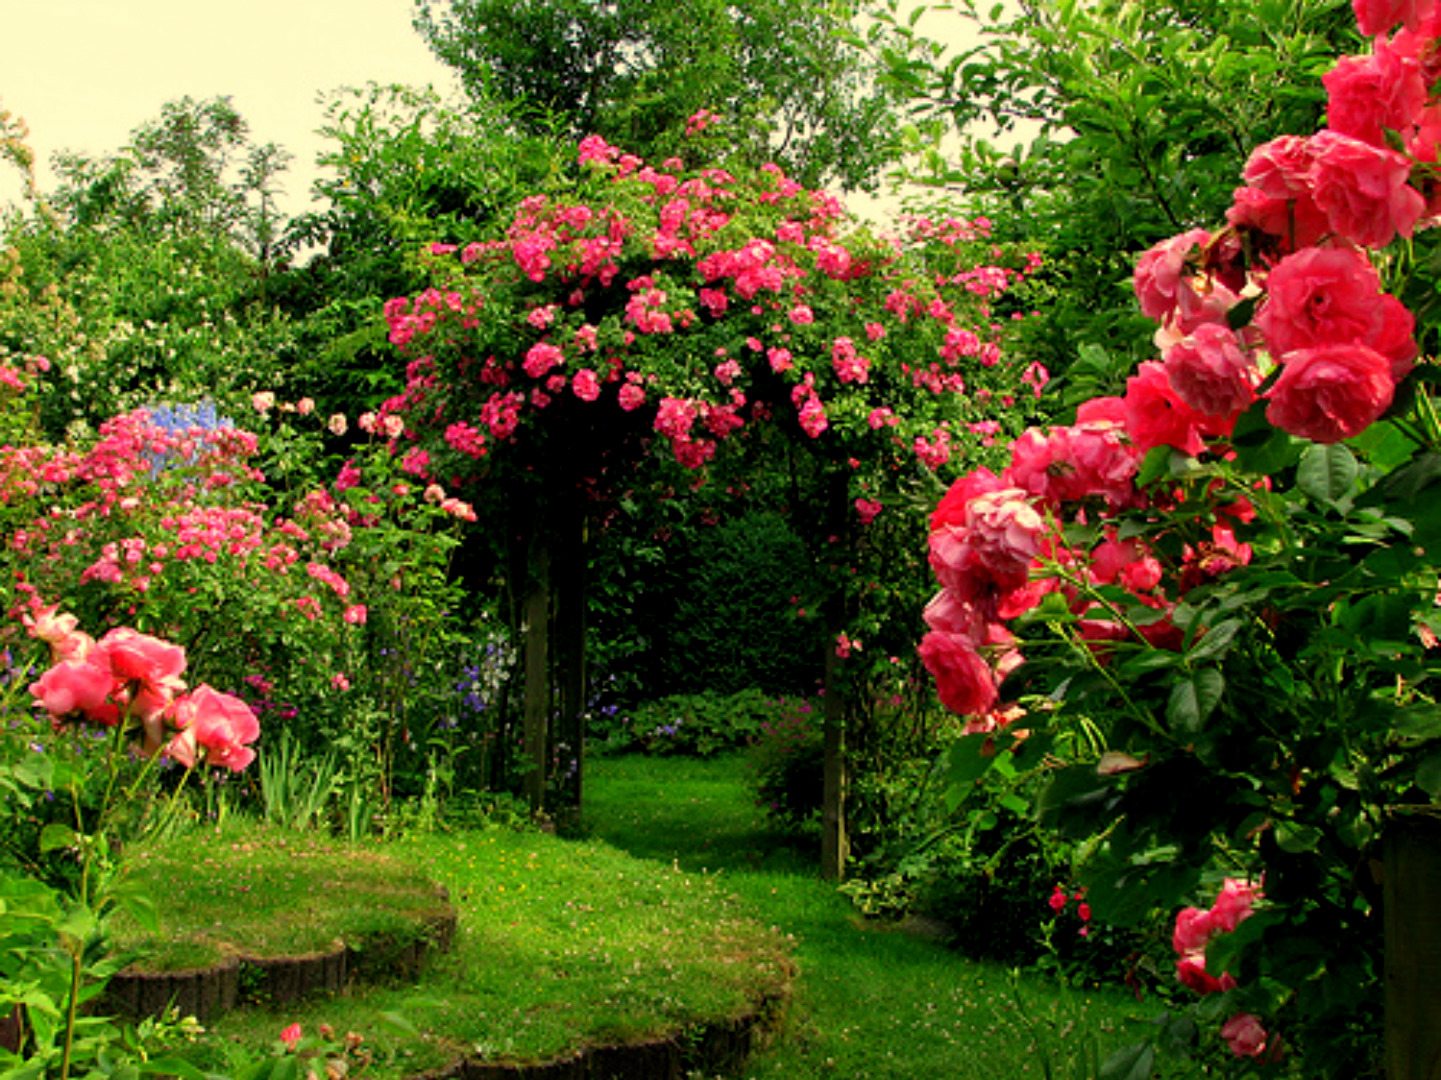 pink-rose-garden-top-hd-wide-wallpapers-free-for-desktop - hd